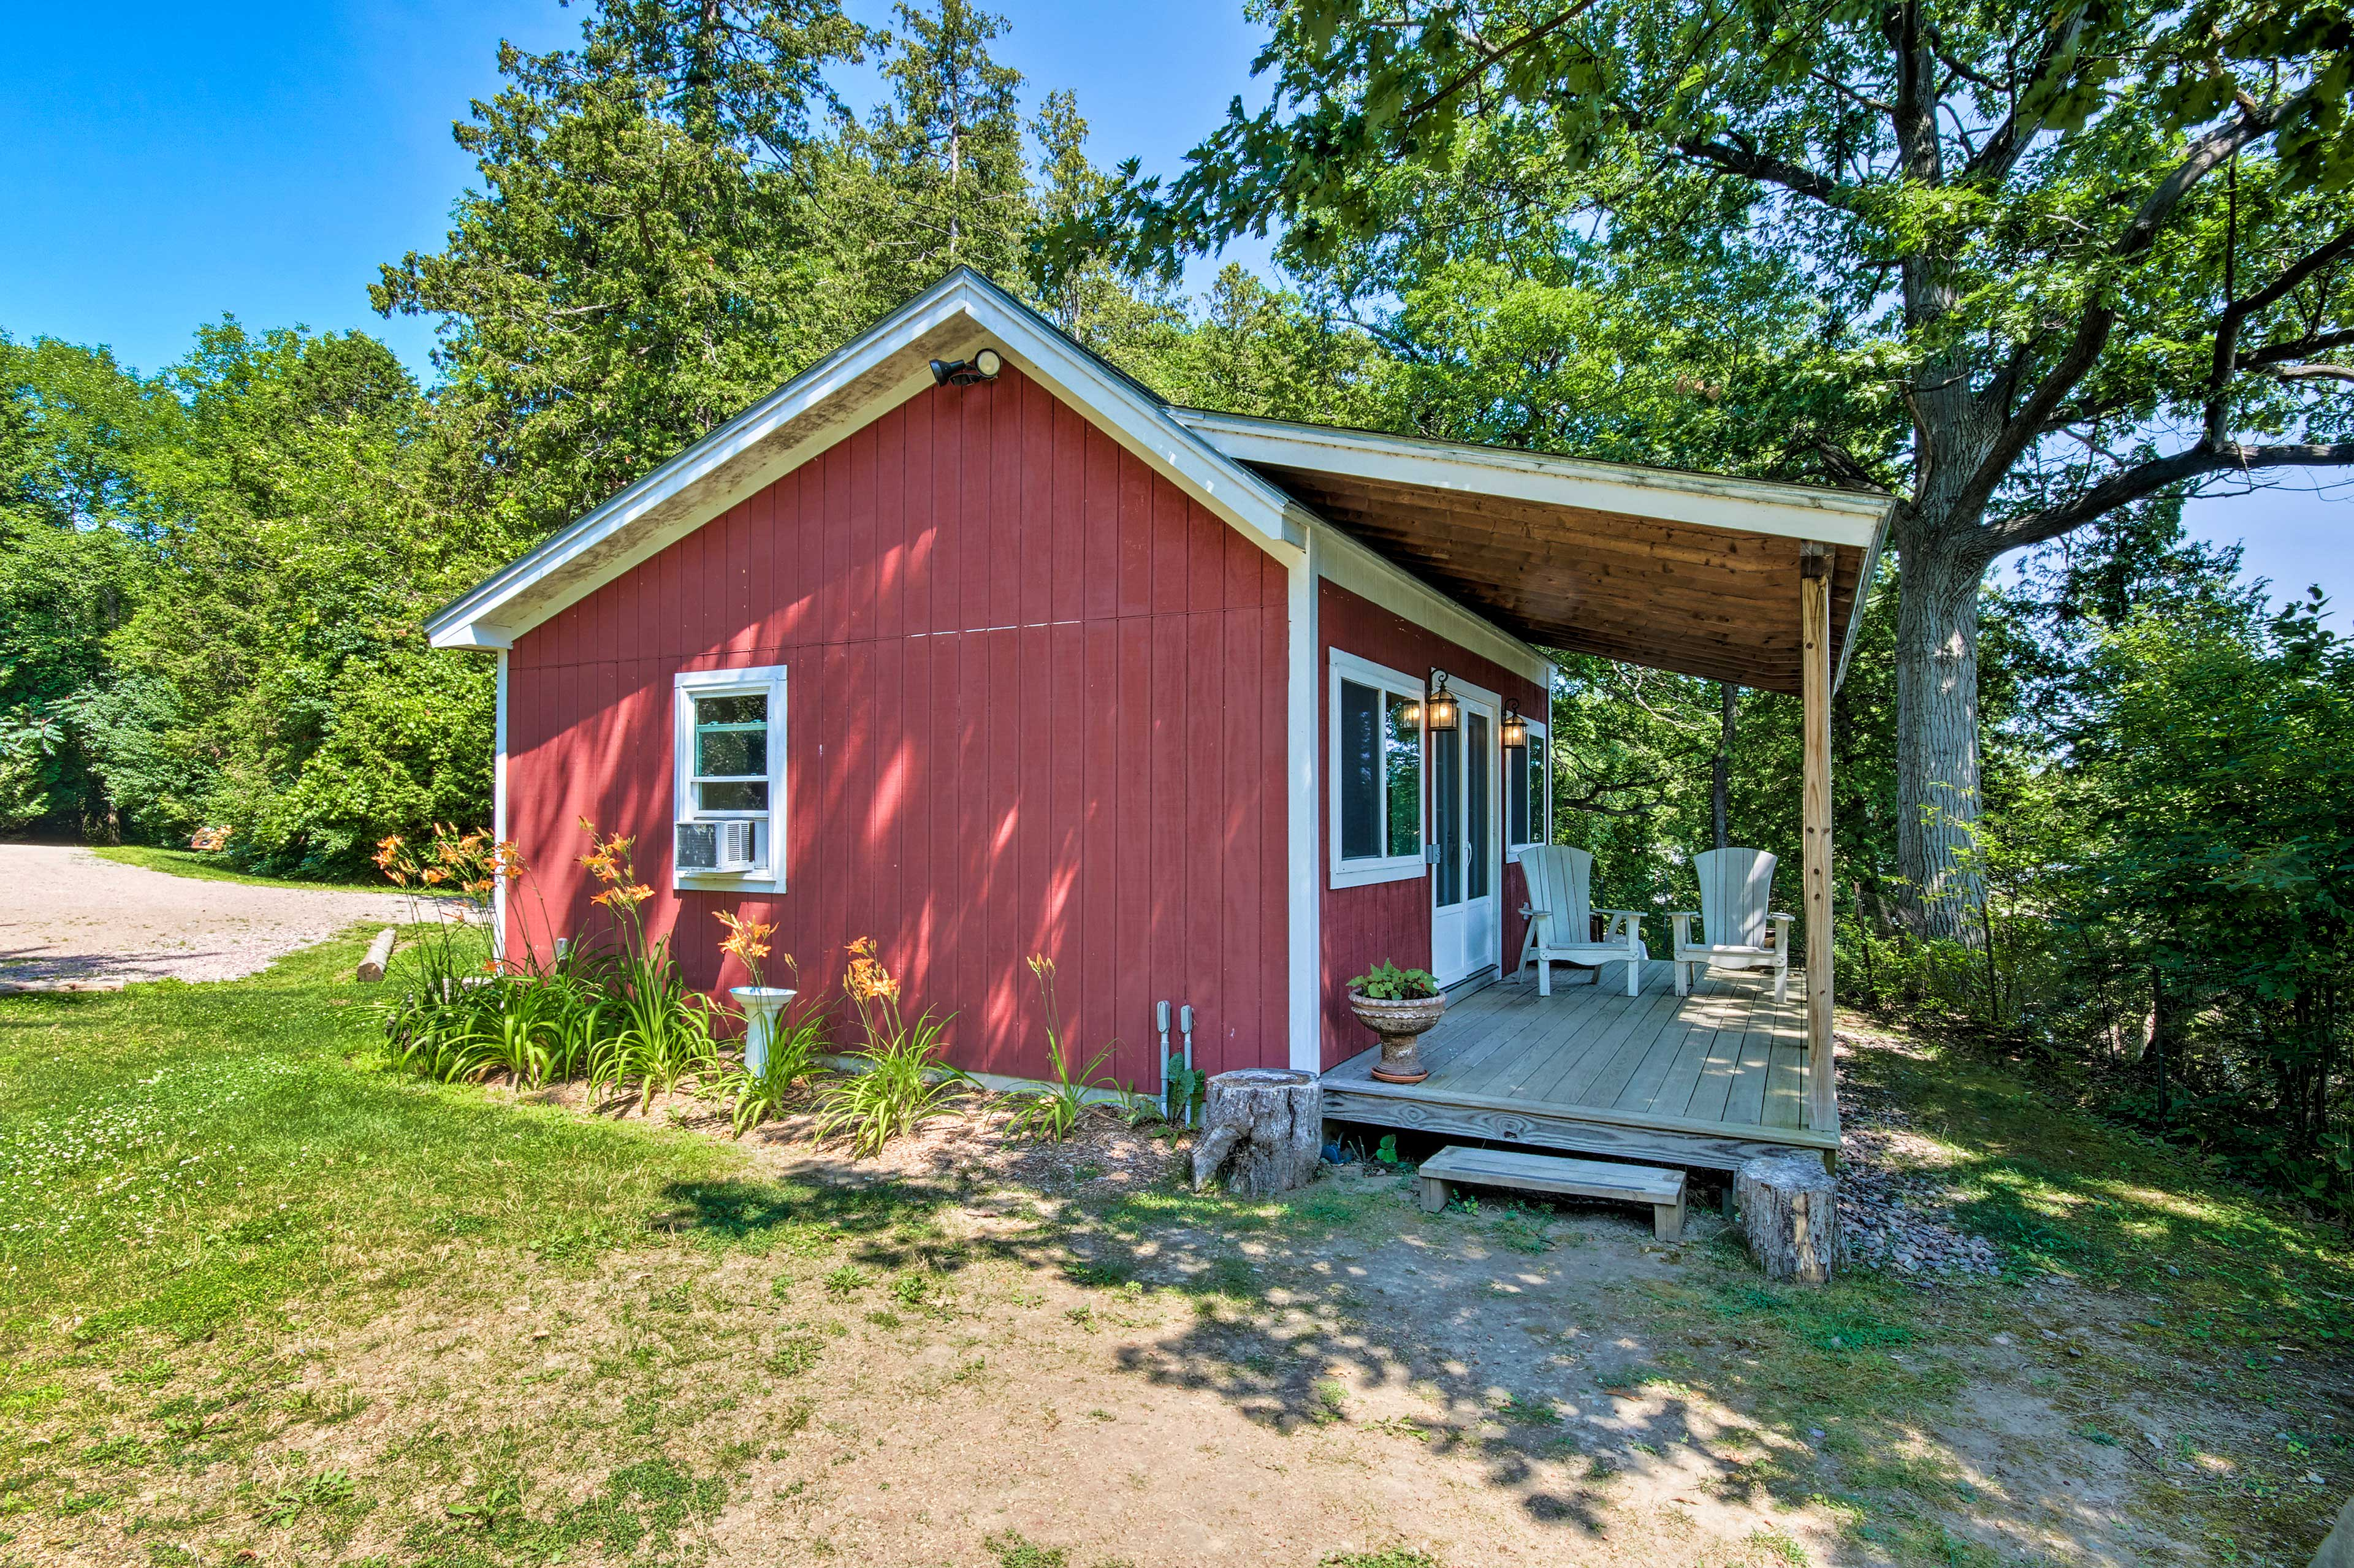 The bunkhouse is available for an additional fee of $200 per night!